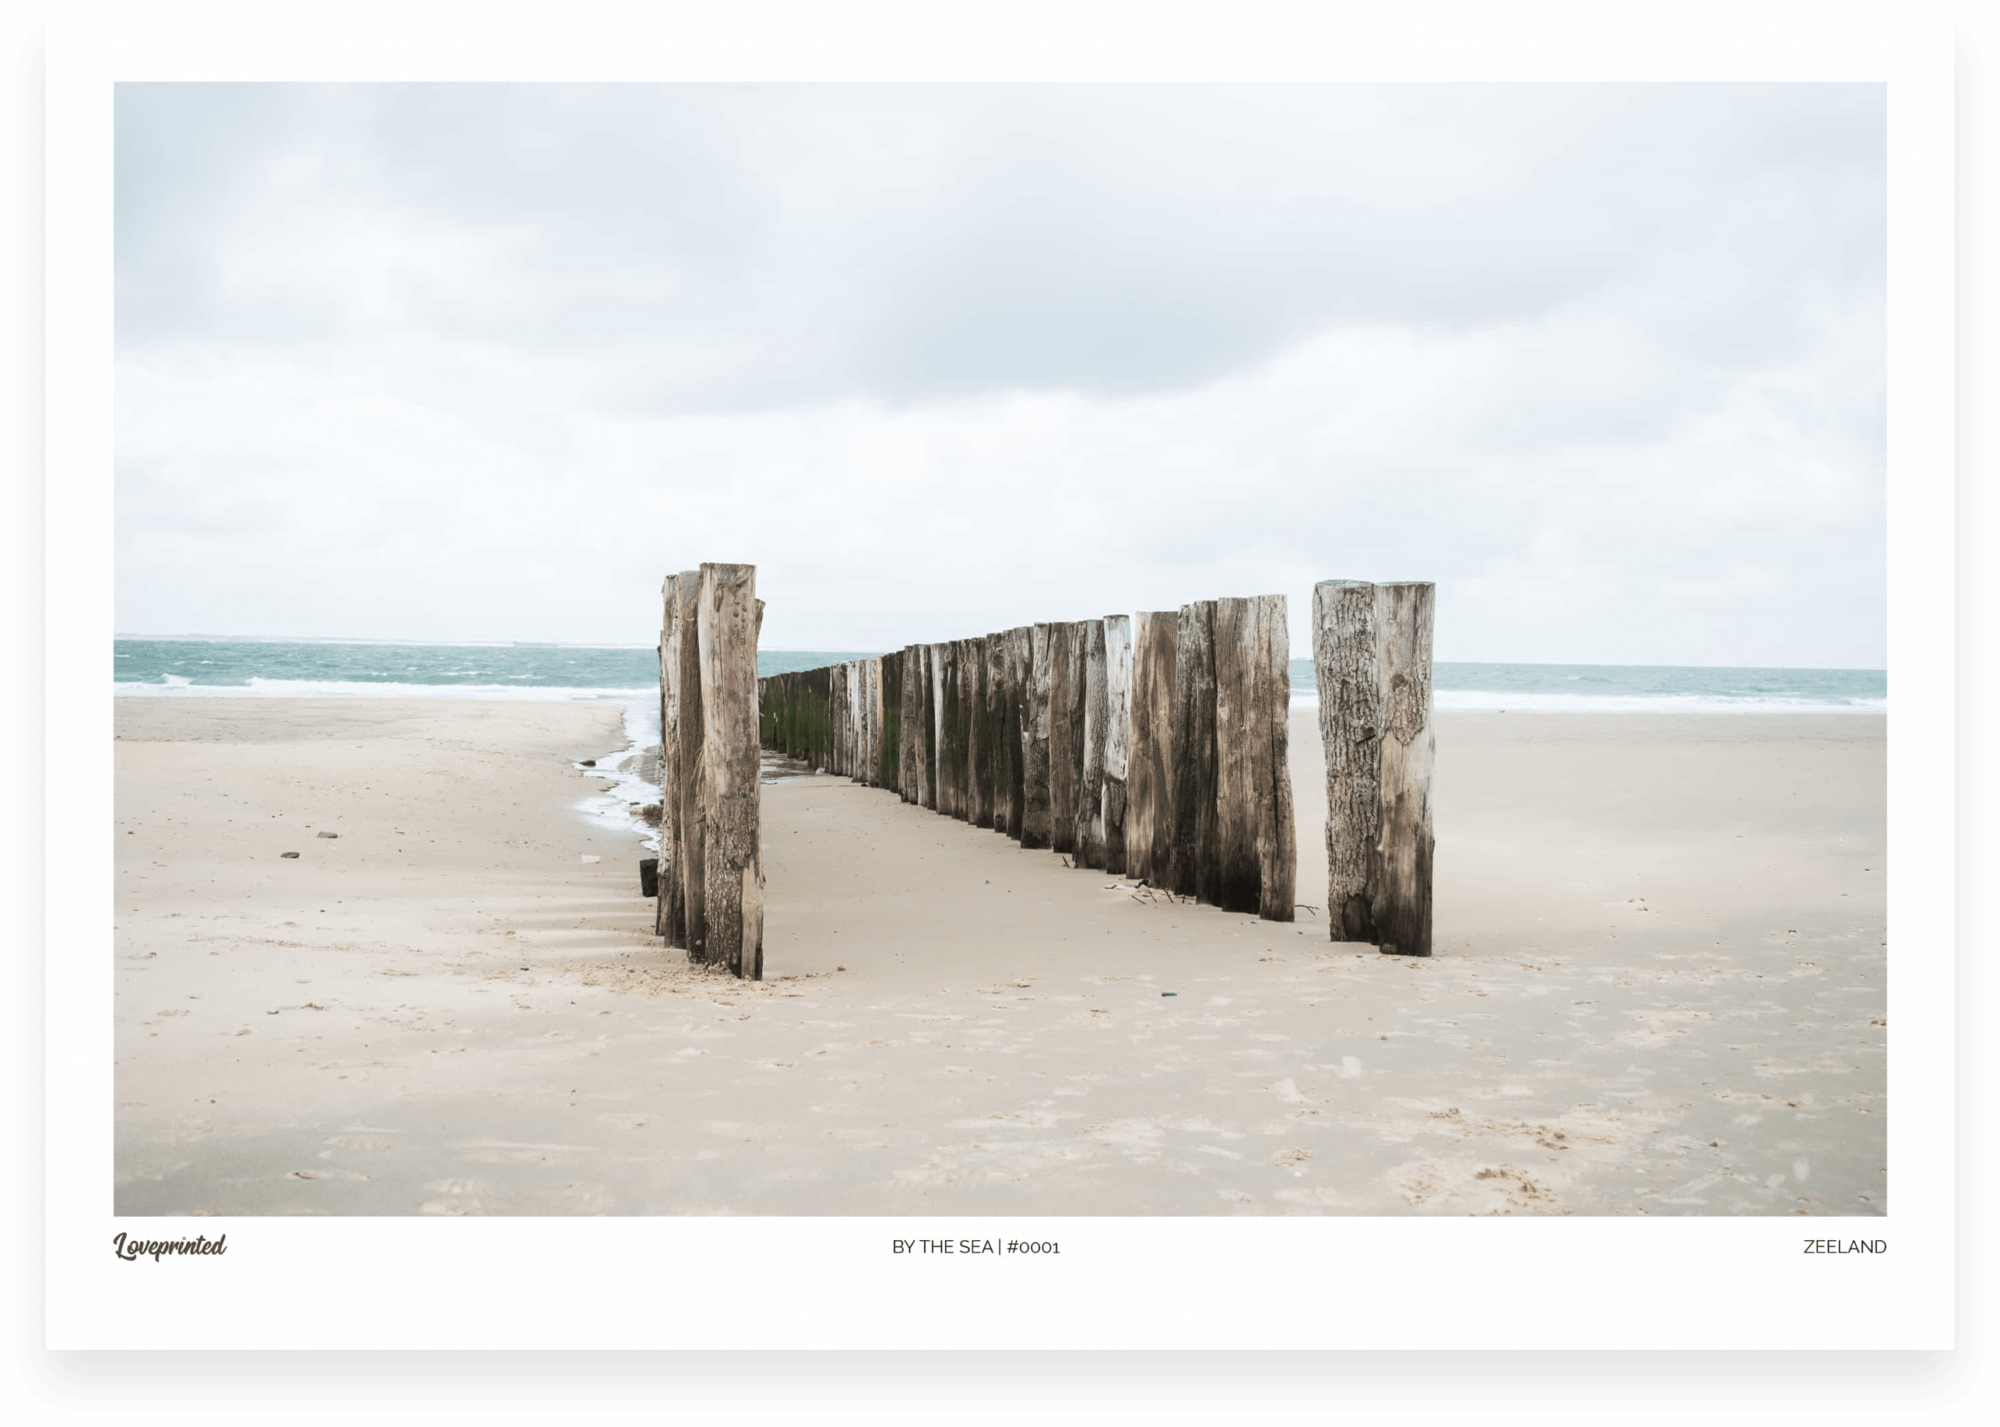 By the sea | An image of a Dutch beach made by Loveprinted